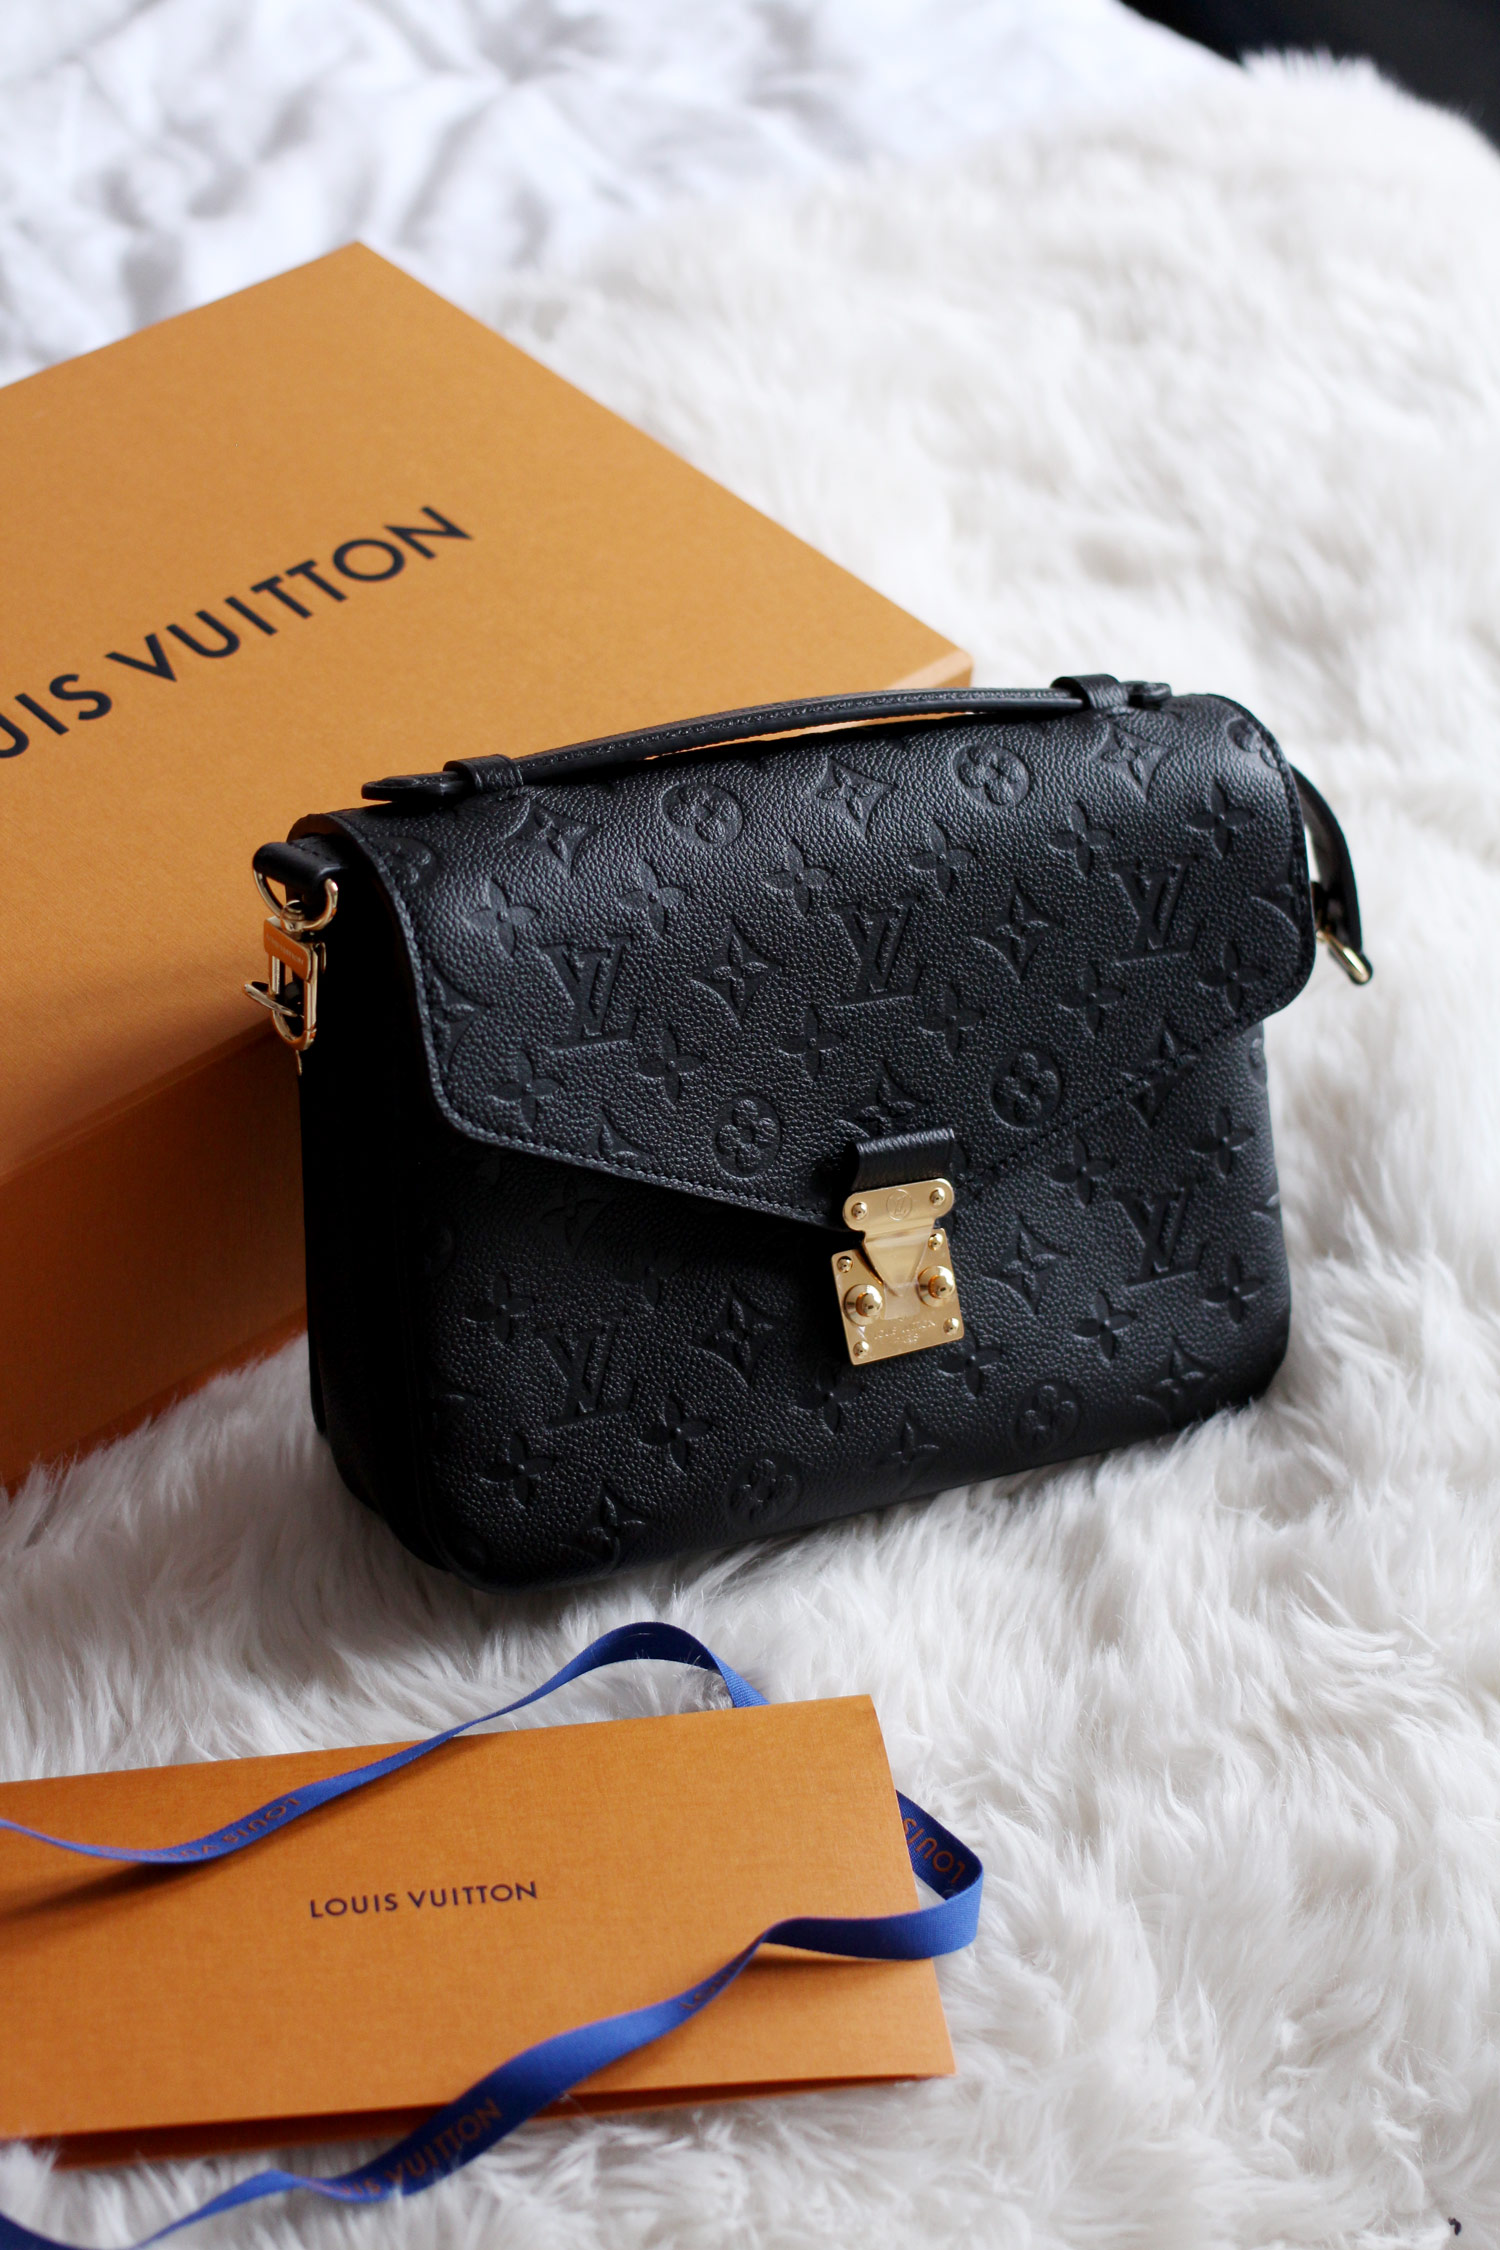 louis-vuitton-pochette-metis-Monogram-Empreinte-Leather-black-bag-review-2